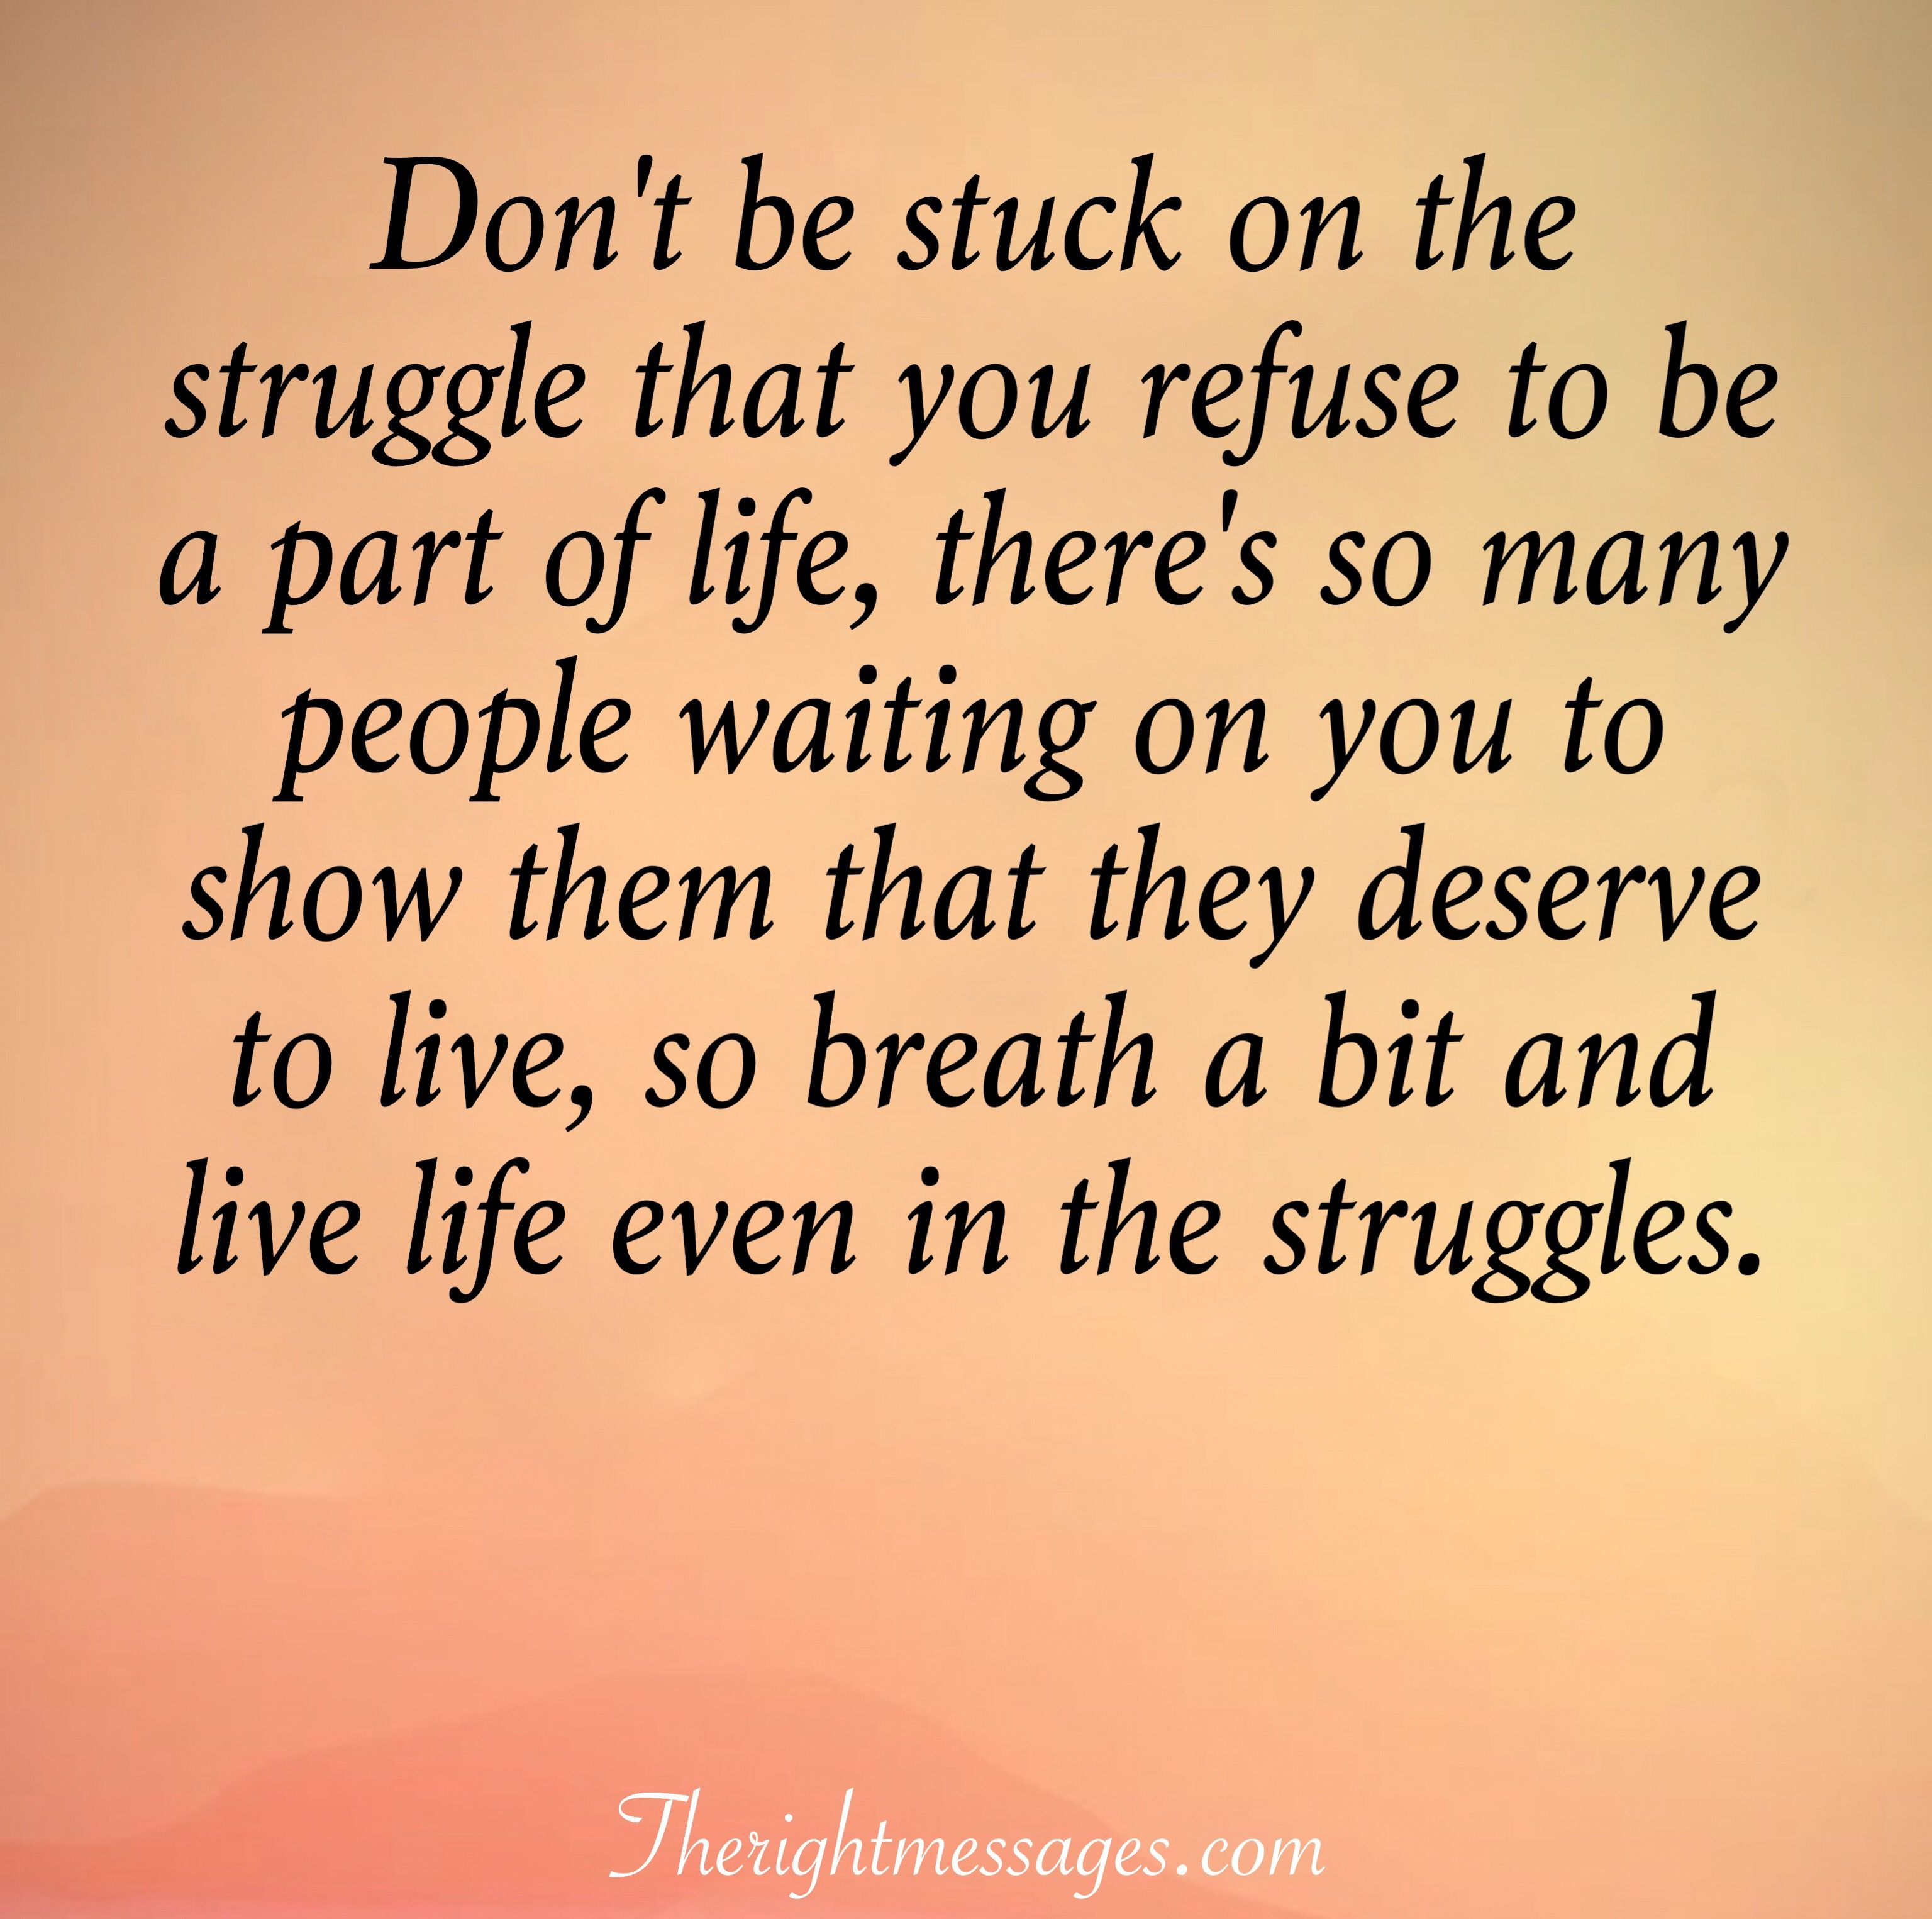 31 Inspirational Quotes About Life And Struggles The Right Messages Inspiring Quotes About Life Life Quotes Movie Quotes Inspirational